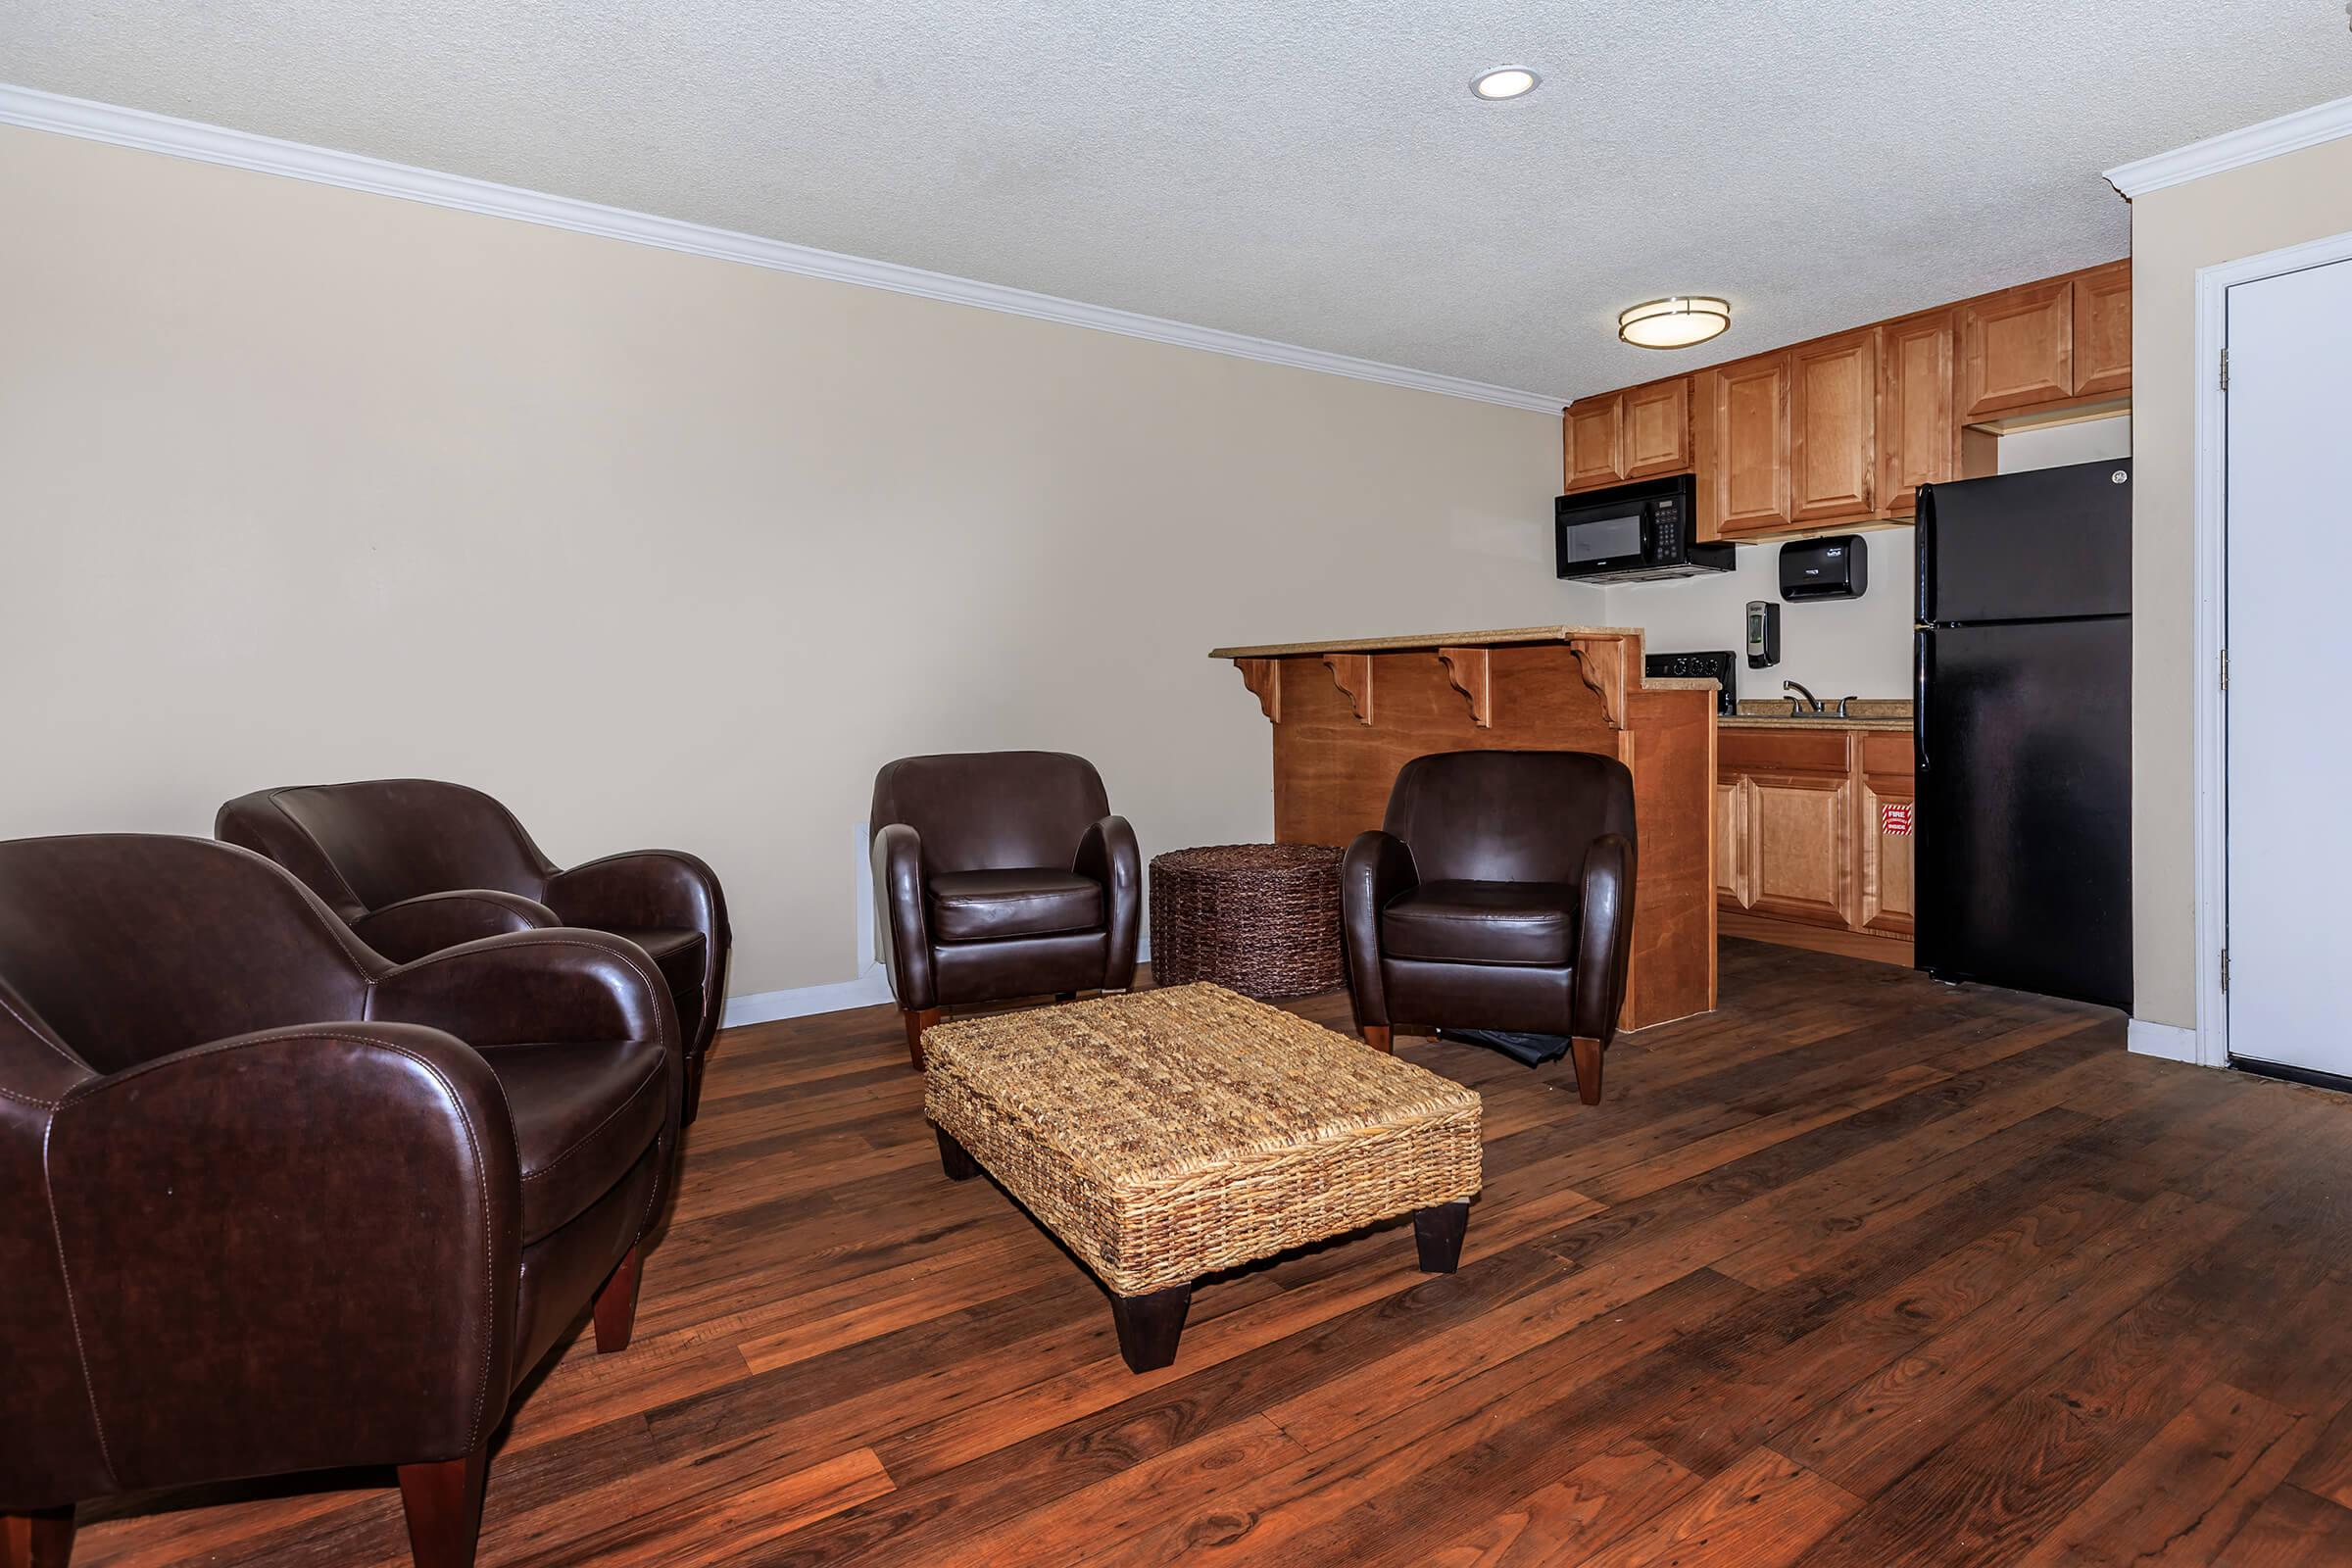 a living room filled with furniture and a tv